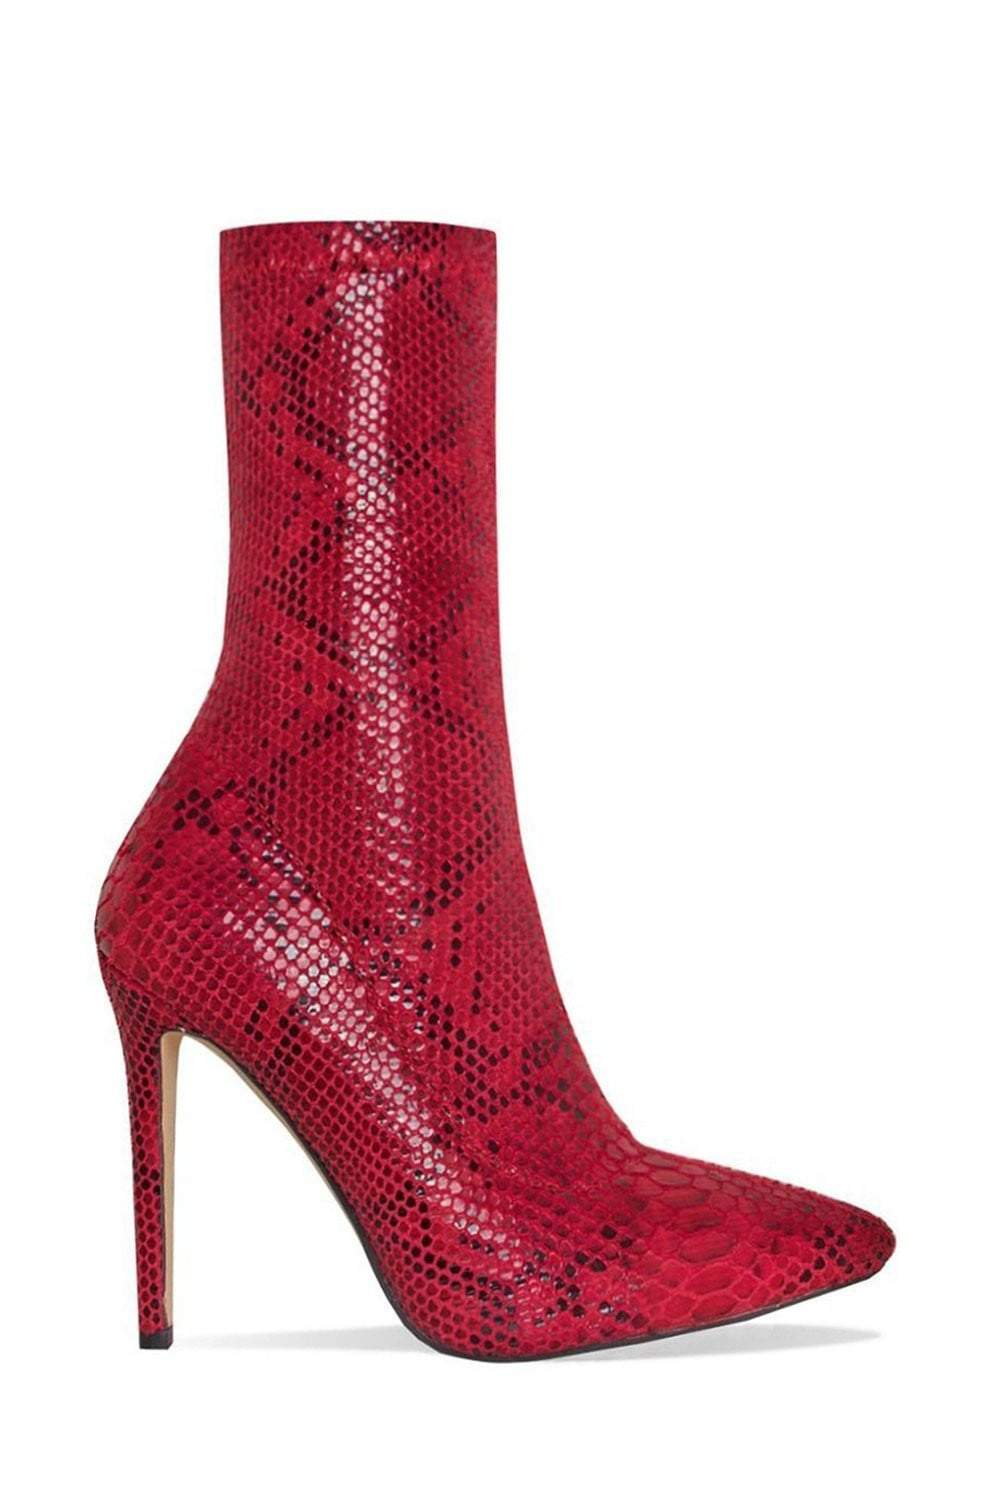 Red Snake Faux Pointed Sock Stiletto Heeled Boots (2335398821947)